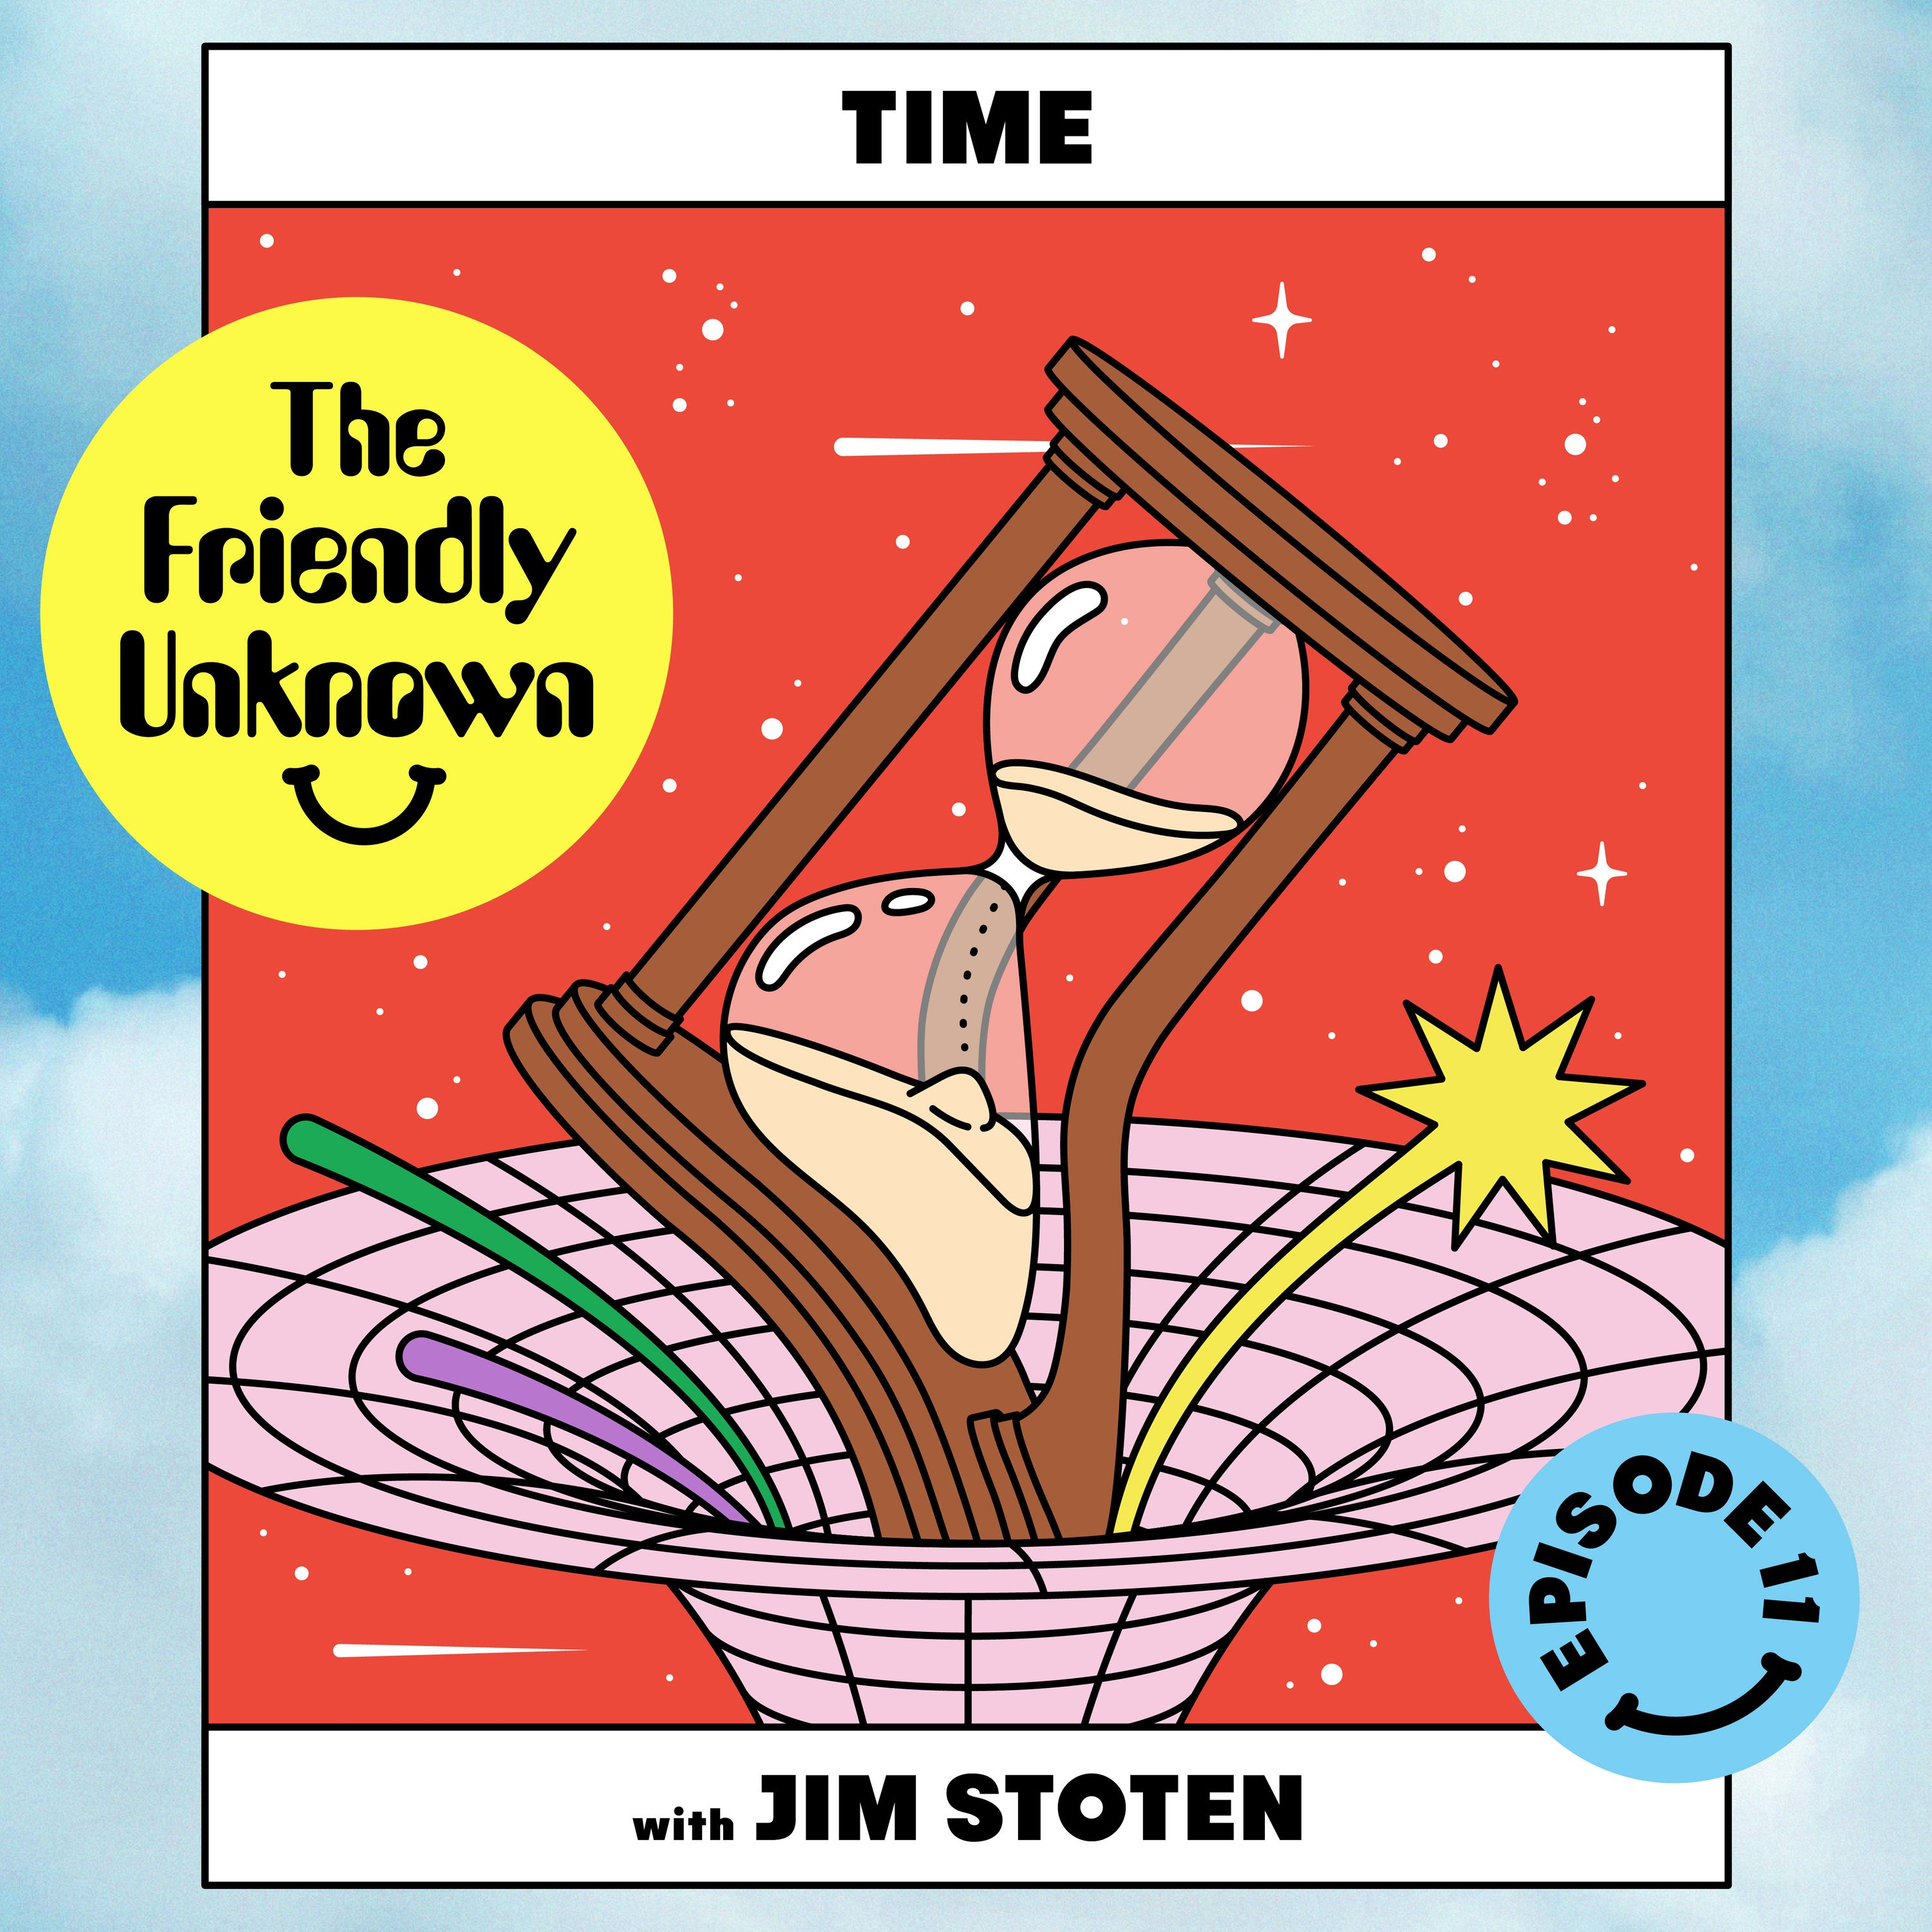 11 - Time with Jim Stoten